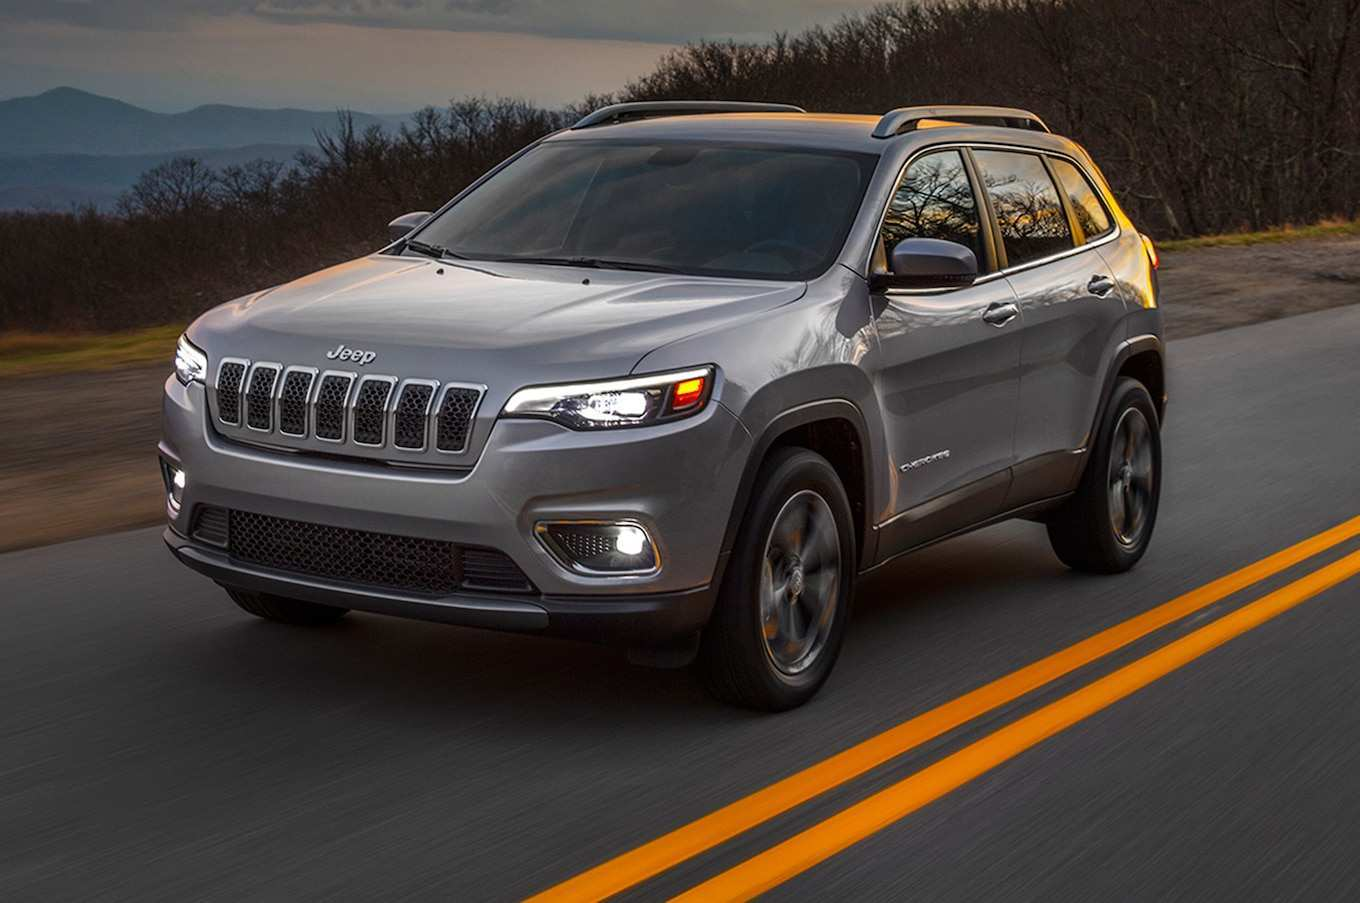 22 Gallery of Difference Between 2018 And 2019 Jeep Cherokee Release Date Performance and New Engine for Difference Between 2018 And 2019 Jeep Cherokee Release Date